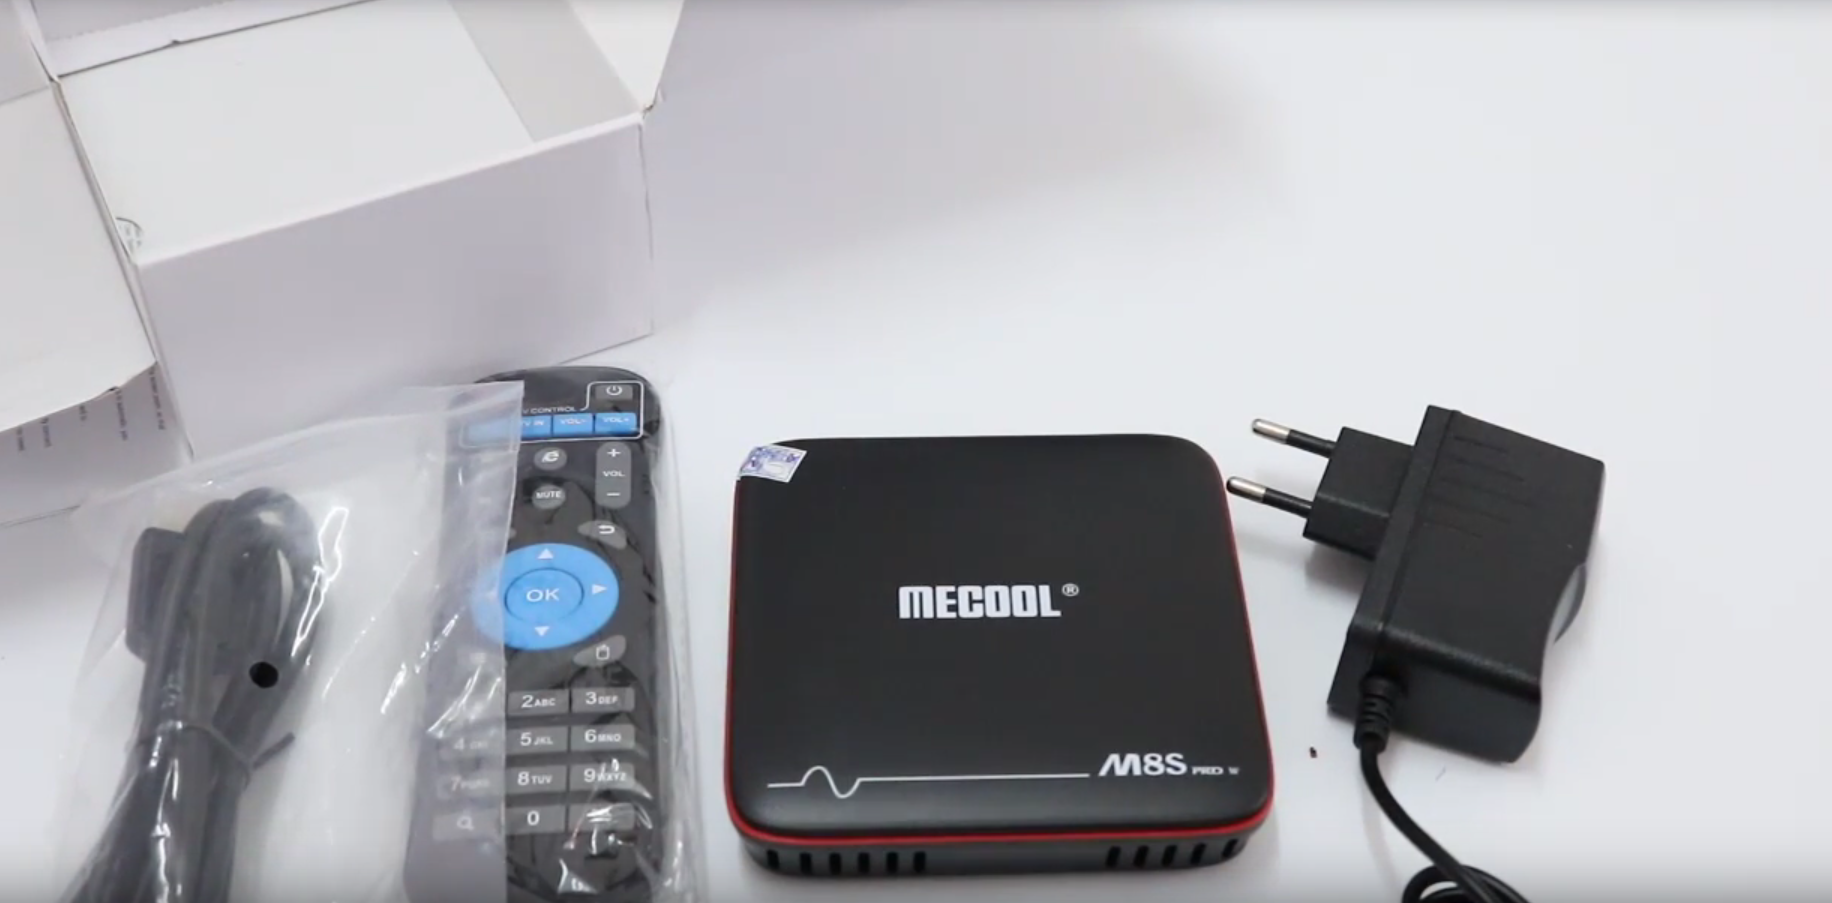 M8S Android TV Box Review | Snap Goods